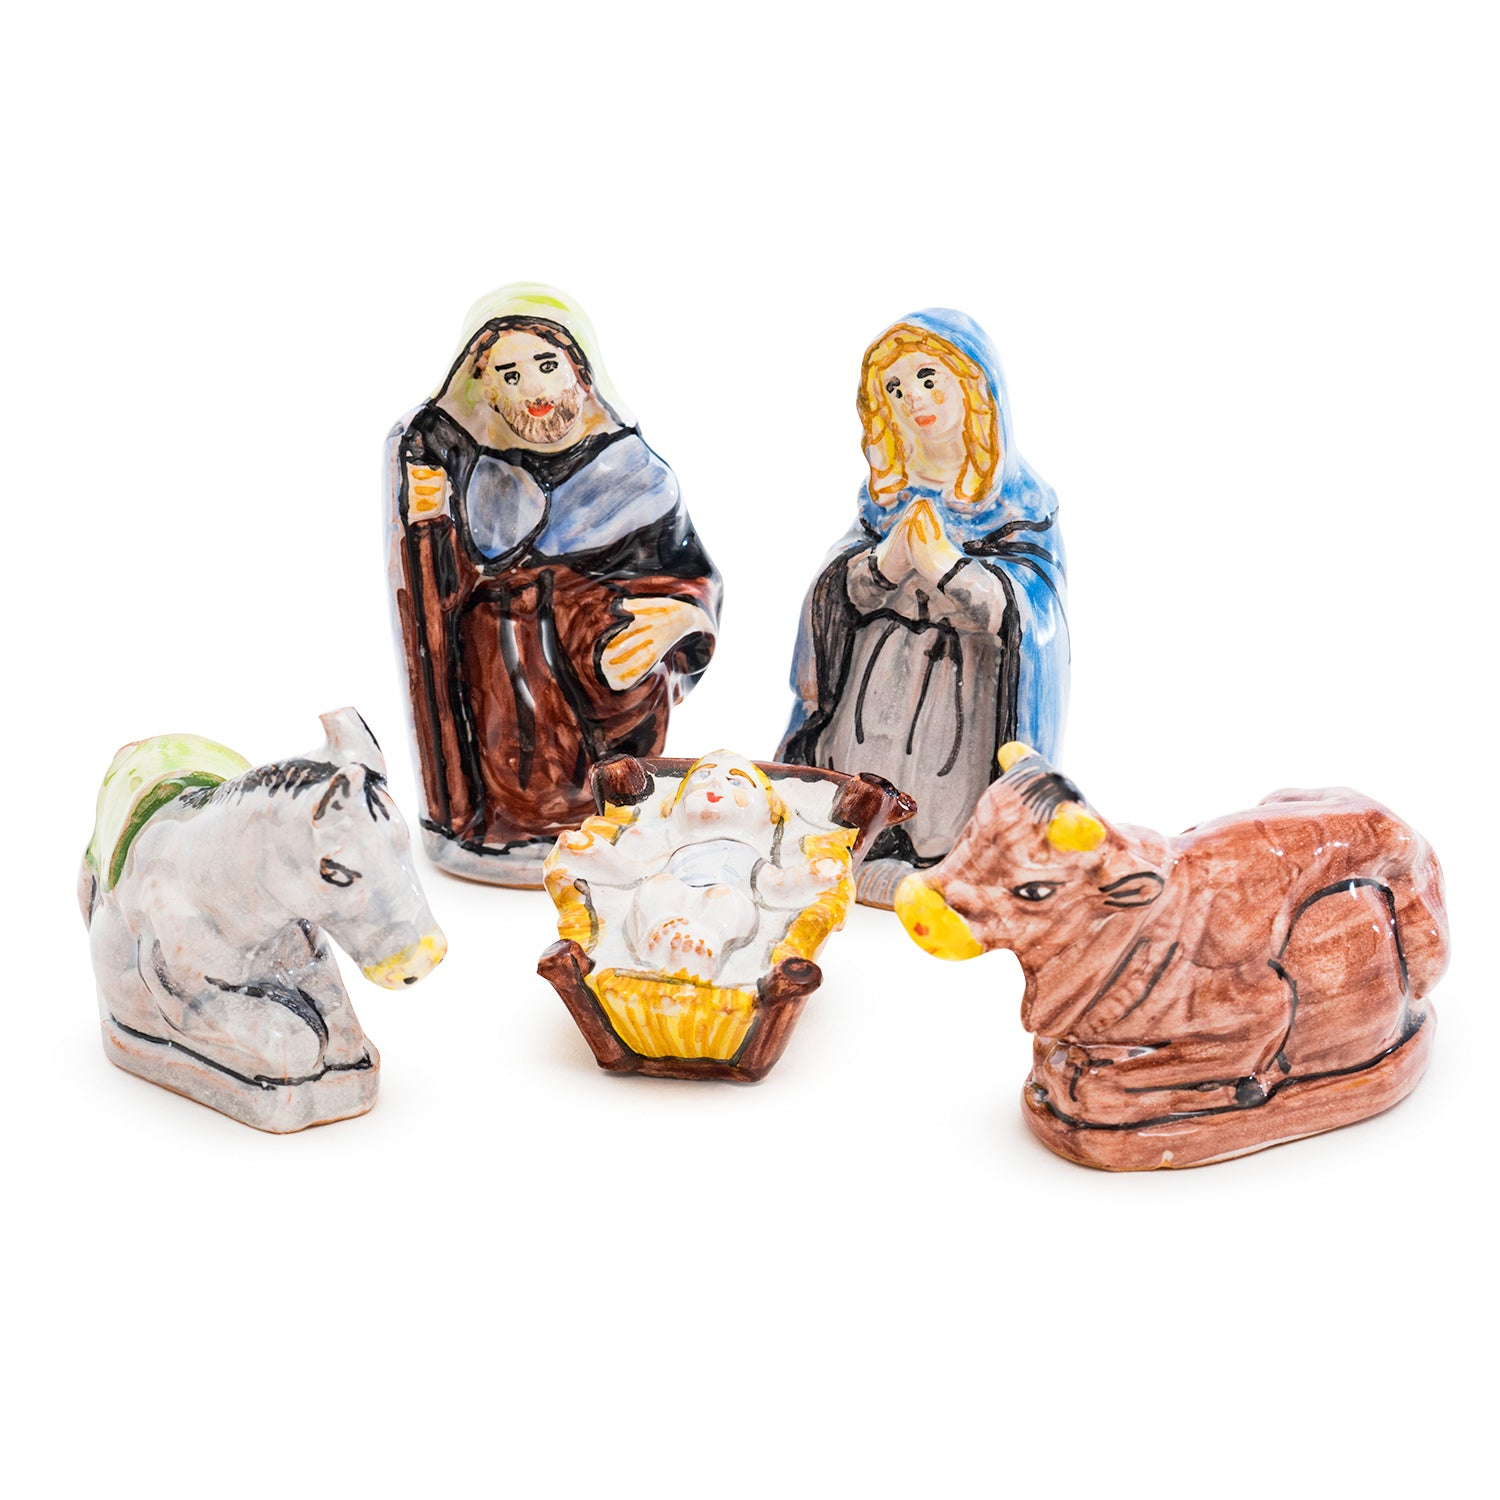 Nativity Small 5 Piece Set